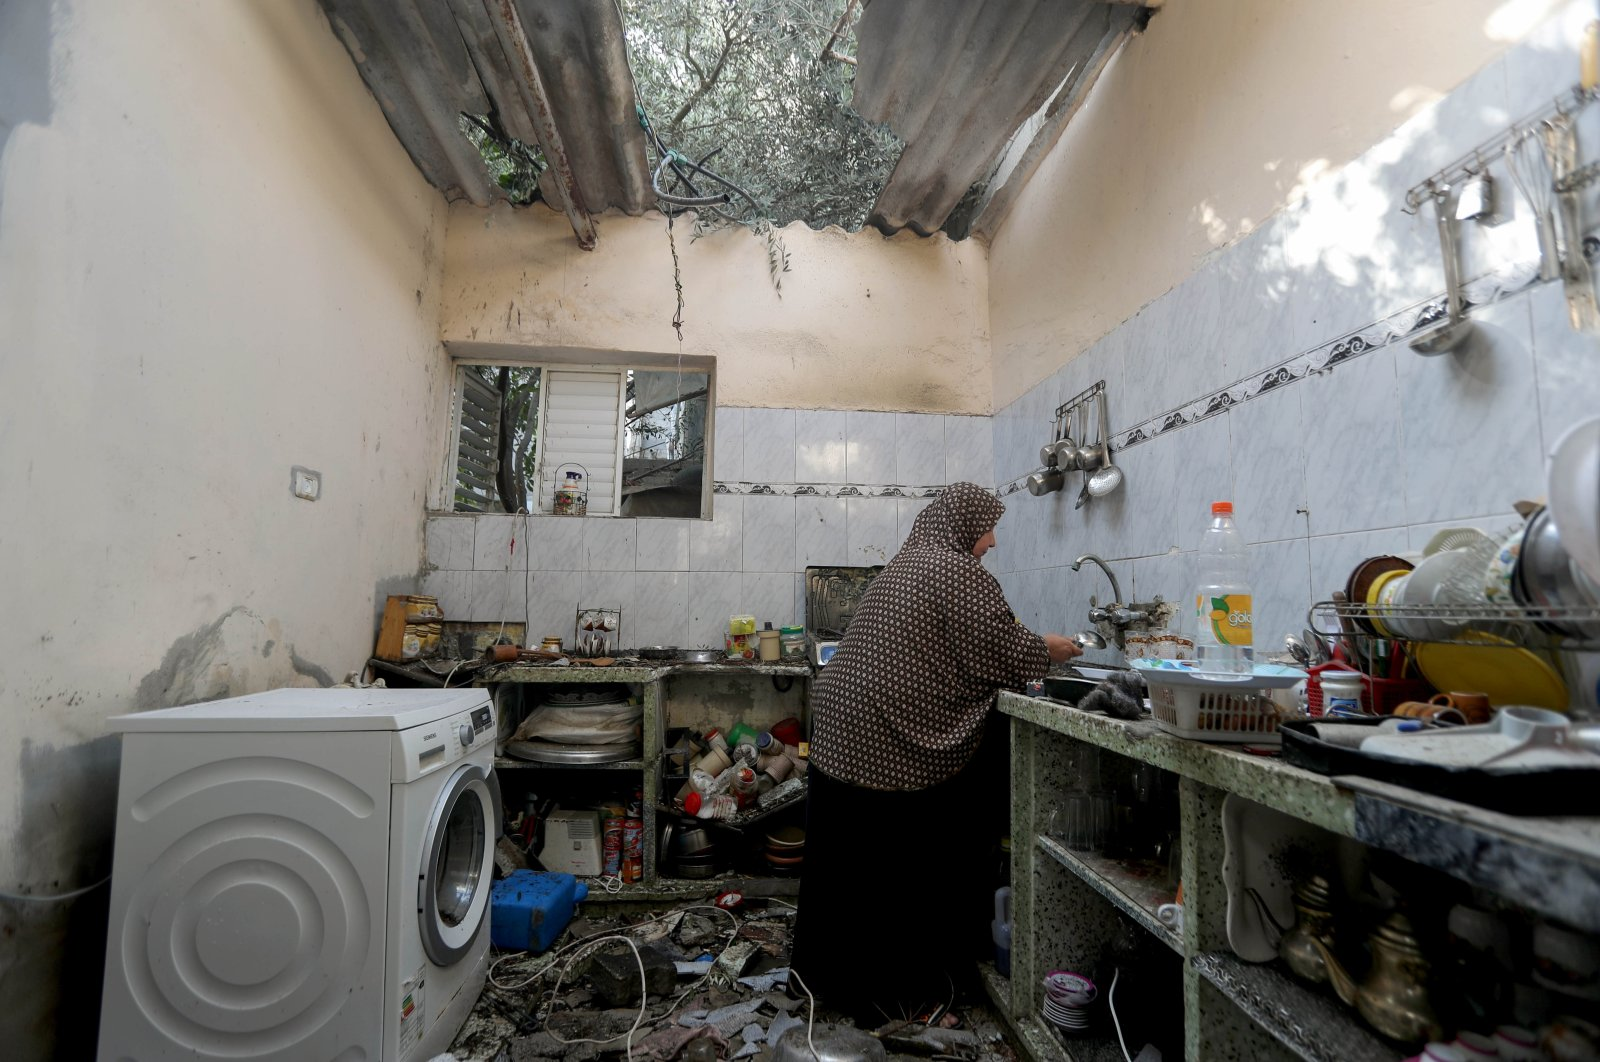 A Palestinian woman works in a kitchen inside a house damaged in an Israeli airstrike, amid Israeli attacks on Gaza, May 20, 2021. (Reuters Photo)